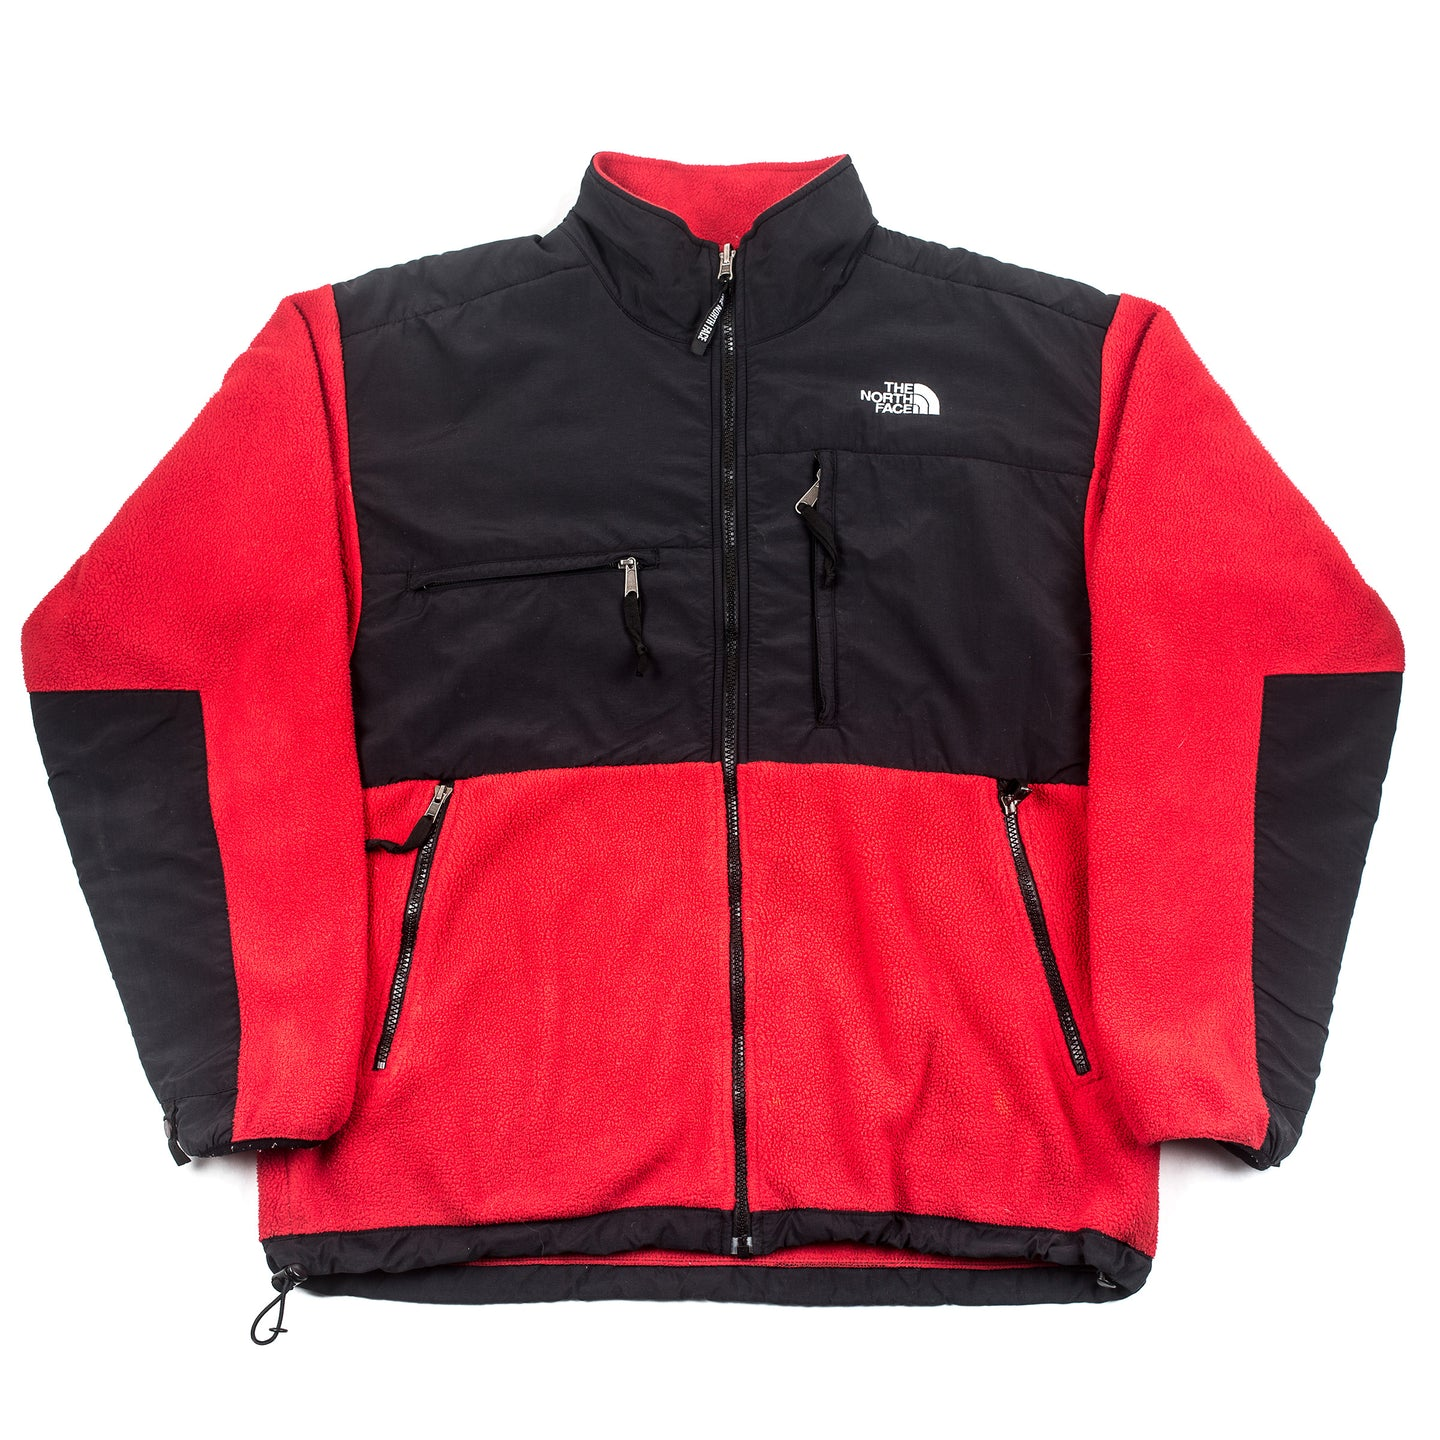 Vintage The North Face Red Denali Fleece